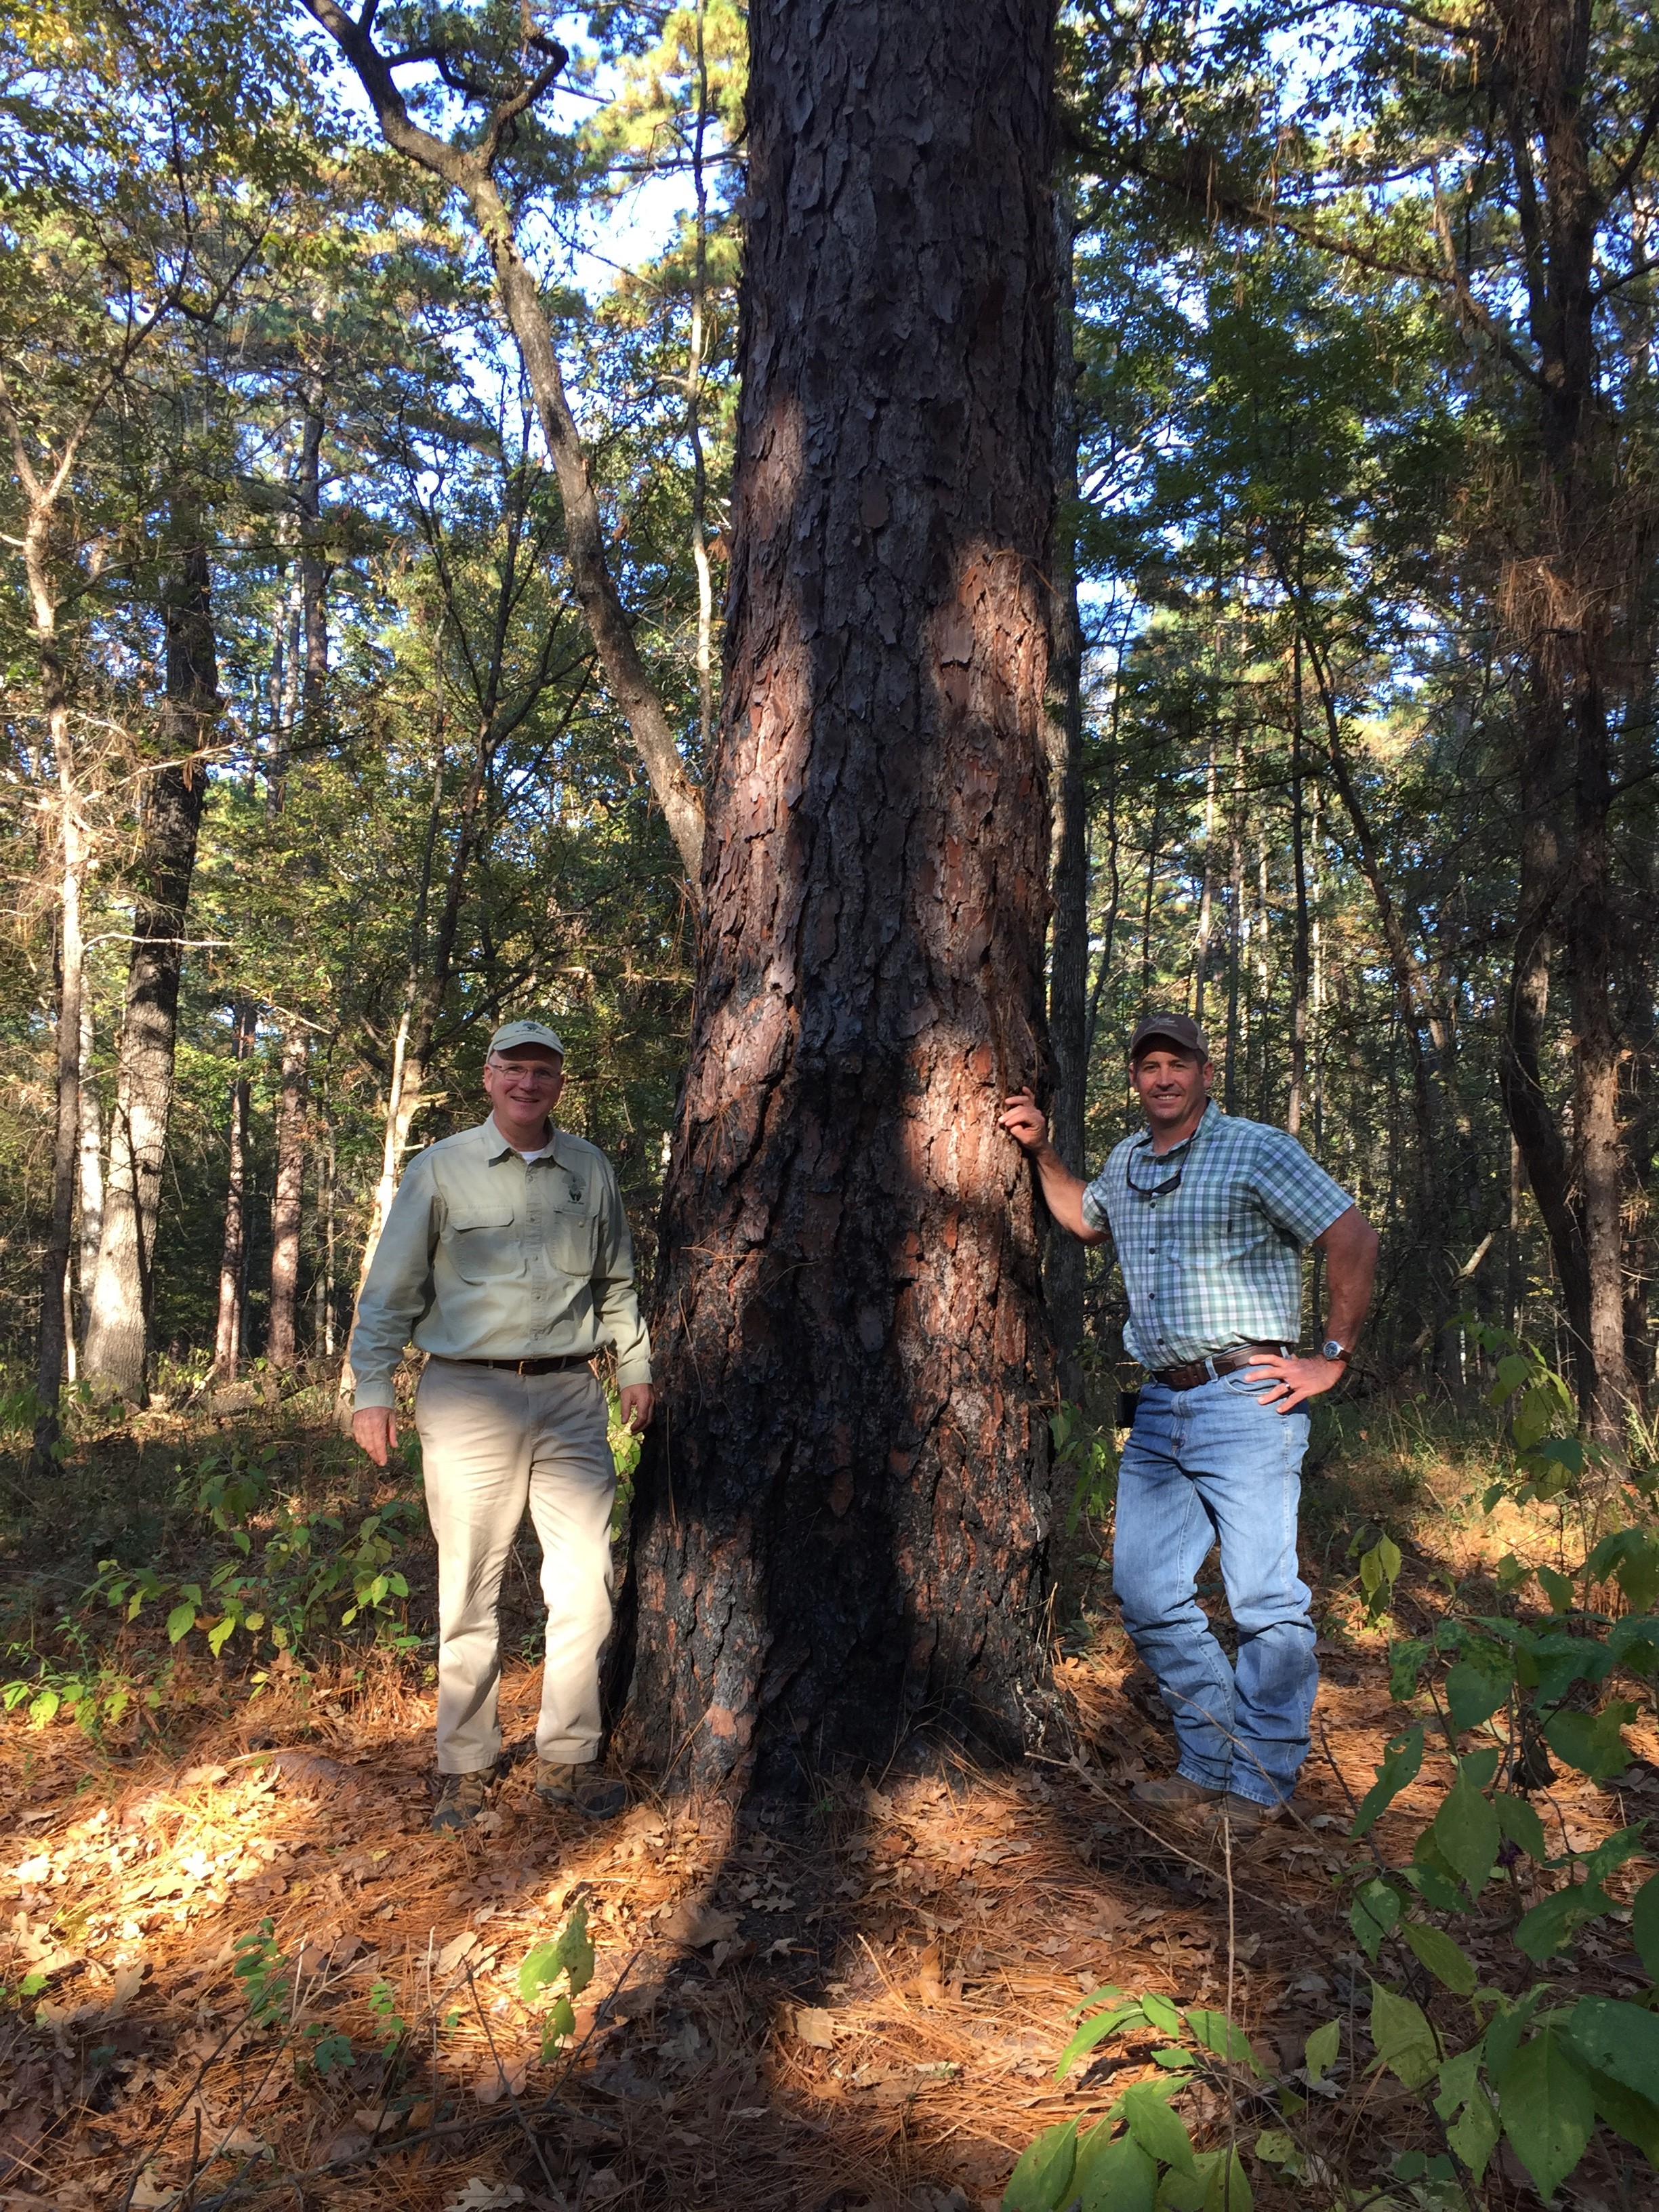 Robert Abernethy, Longleaf Alliance, and Robert Sanders, Boggy Slough Manager, standing next to the recently recognized Texas Champion Longleaf Pine Tree. Photo credit: Kent Evans